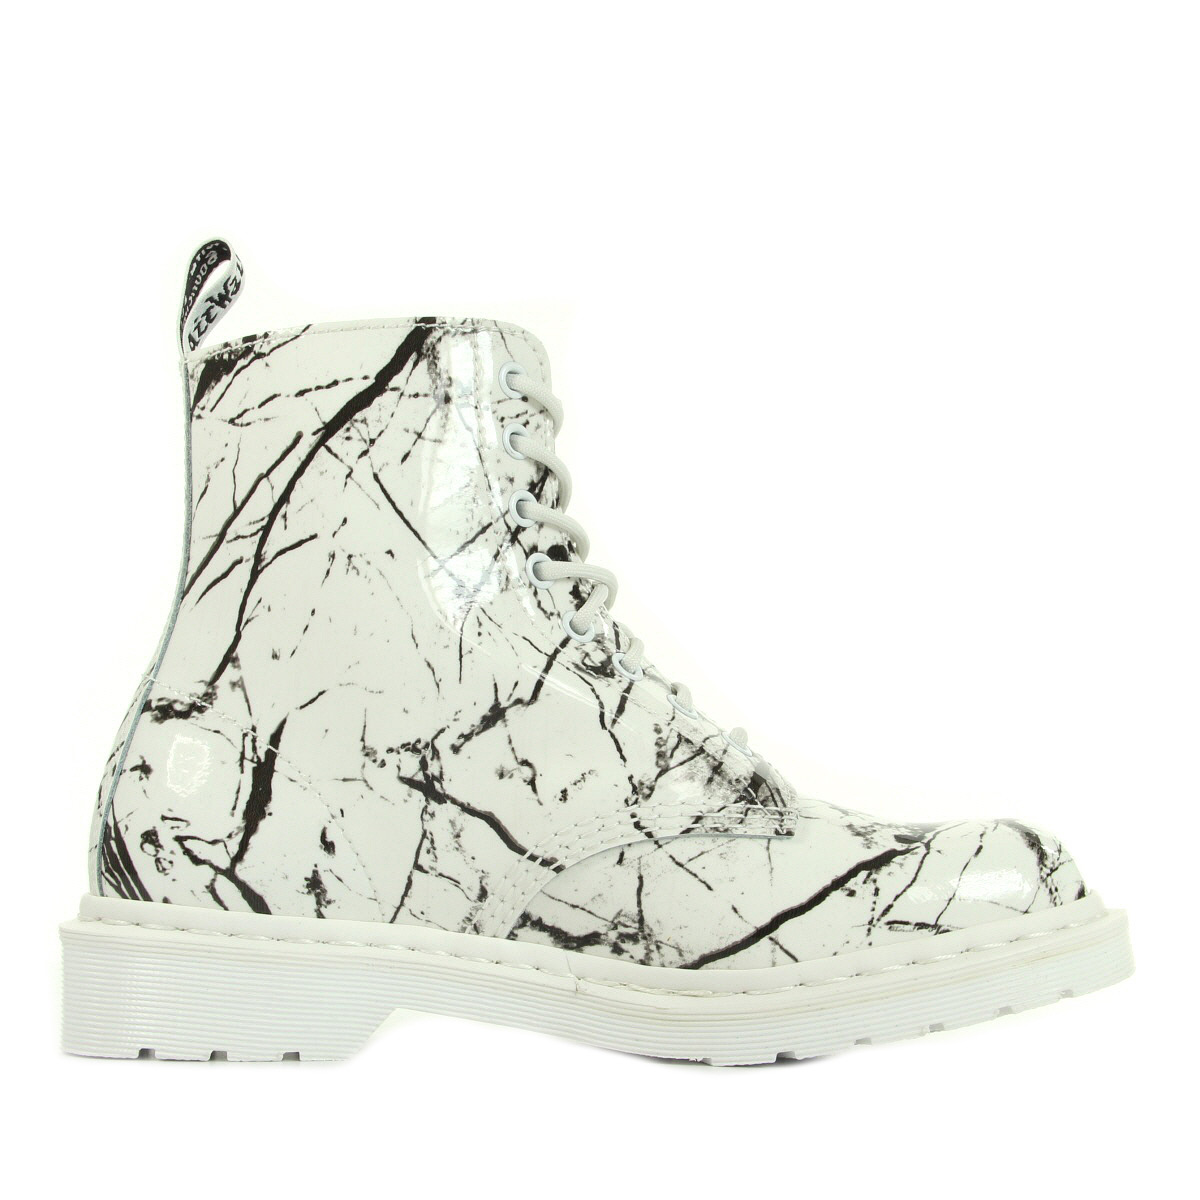 Chaussures Doc Martens Pascal White patent marble femme 21443100 OMqkhRb